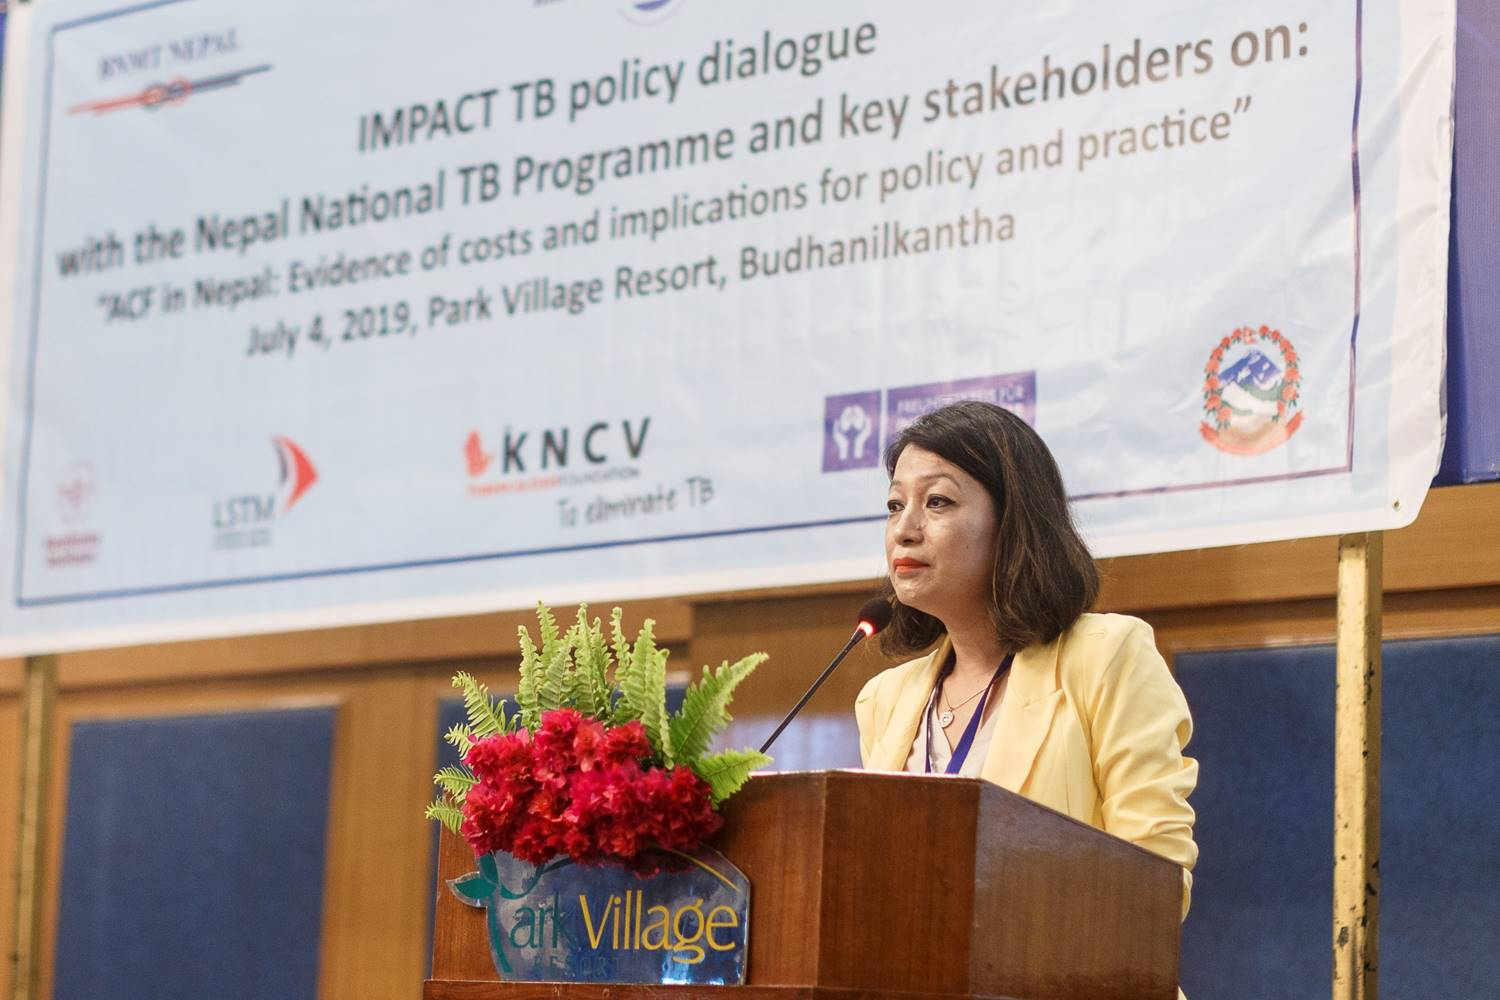 IMPACT-TB policy dialogue workshop held in Nepal